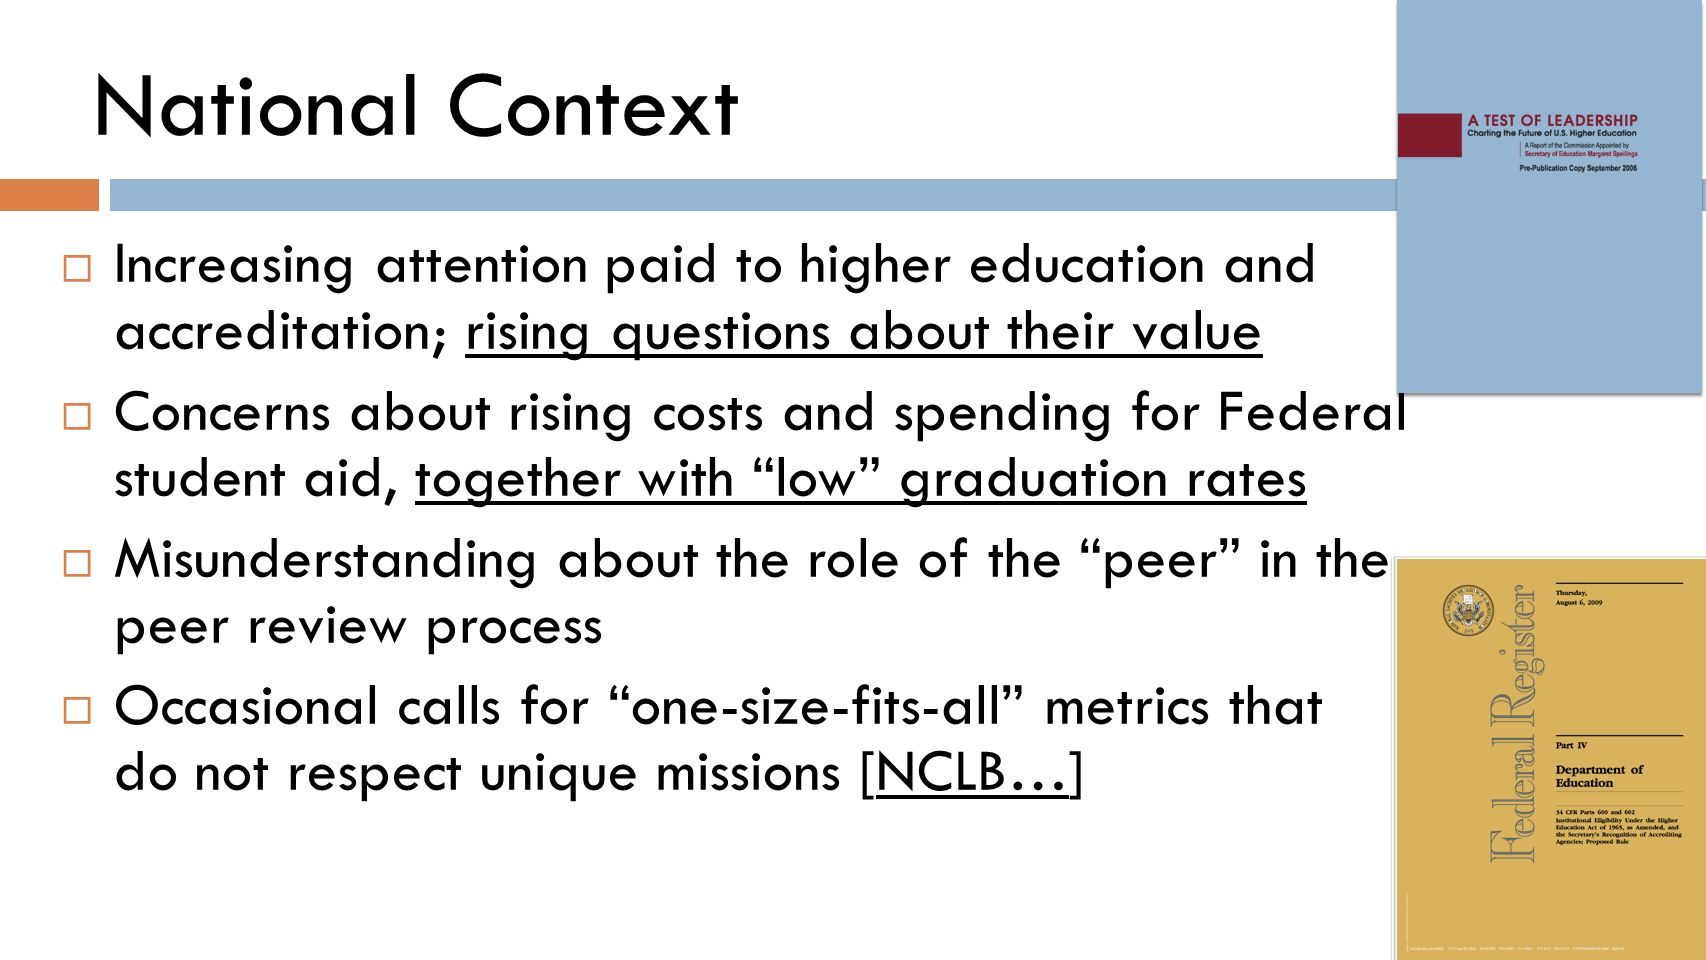 National Context Increasing attention paid to higher education and accreditation; rising questions about their value.